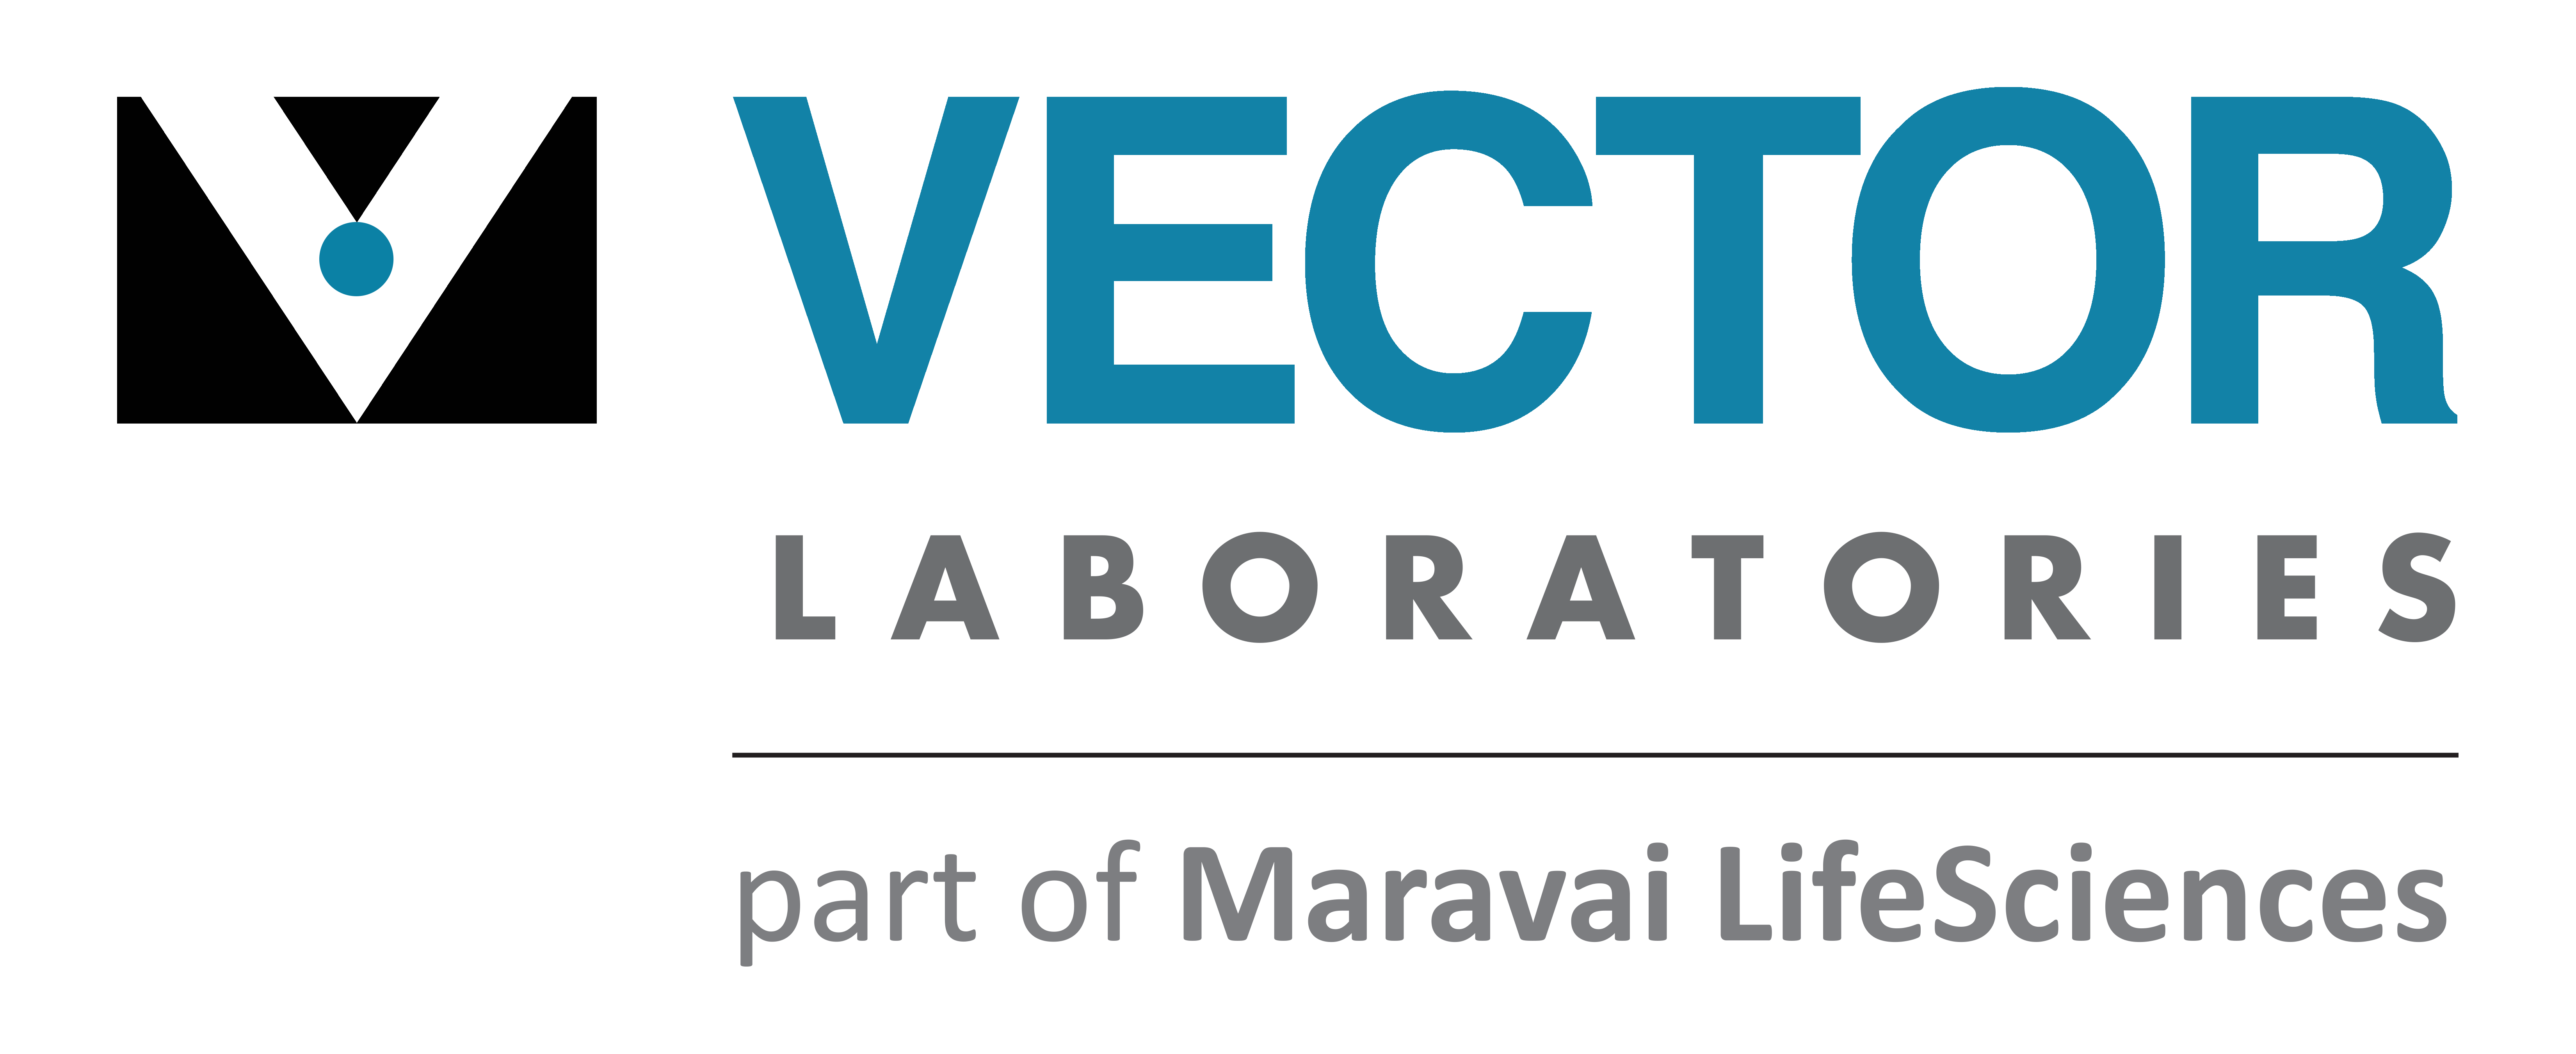 vector laboratories logo transparent